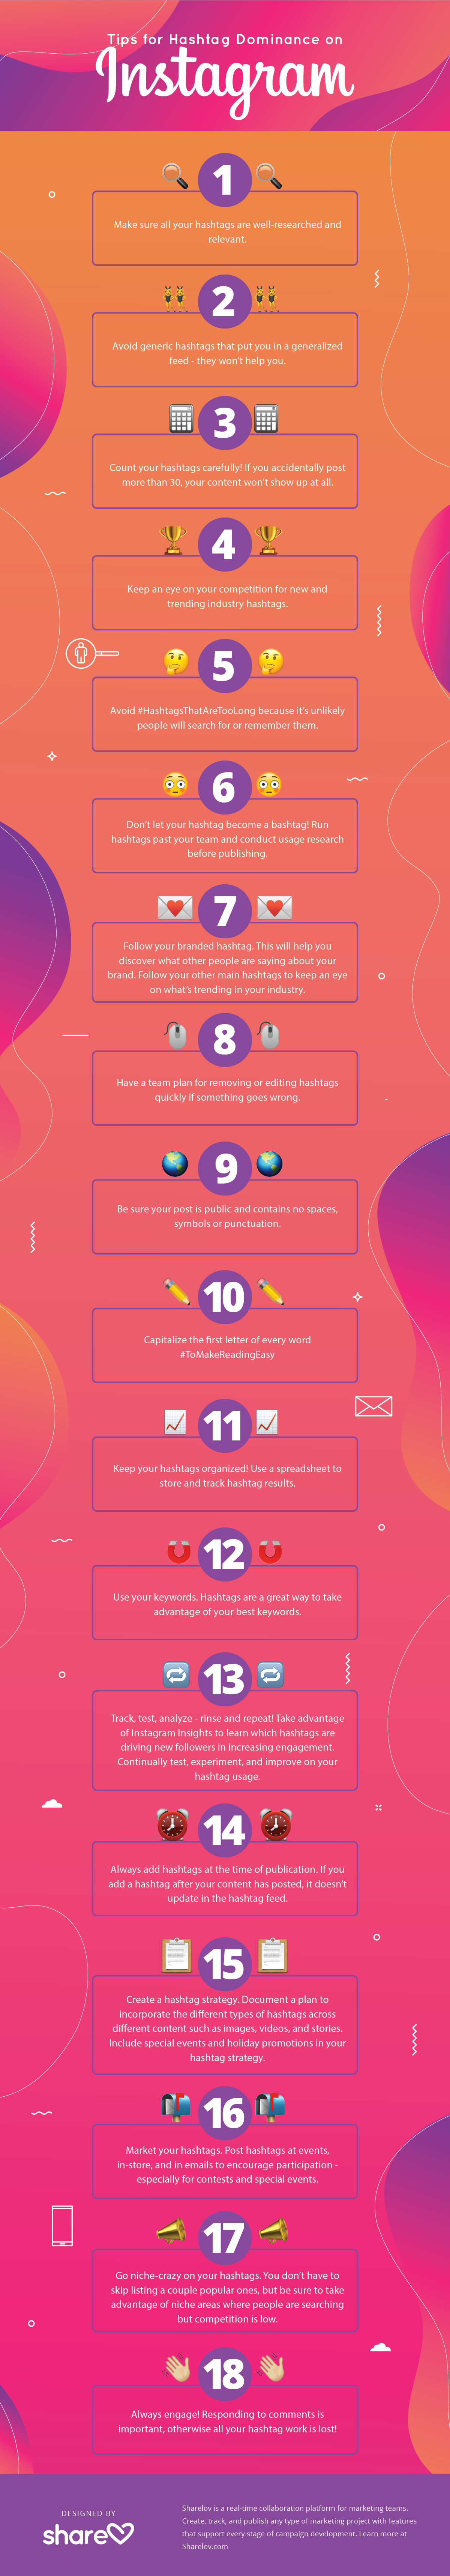 The Ultimate Guide to Instagram Hashtags 2019